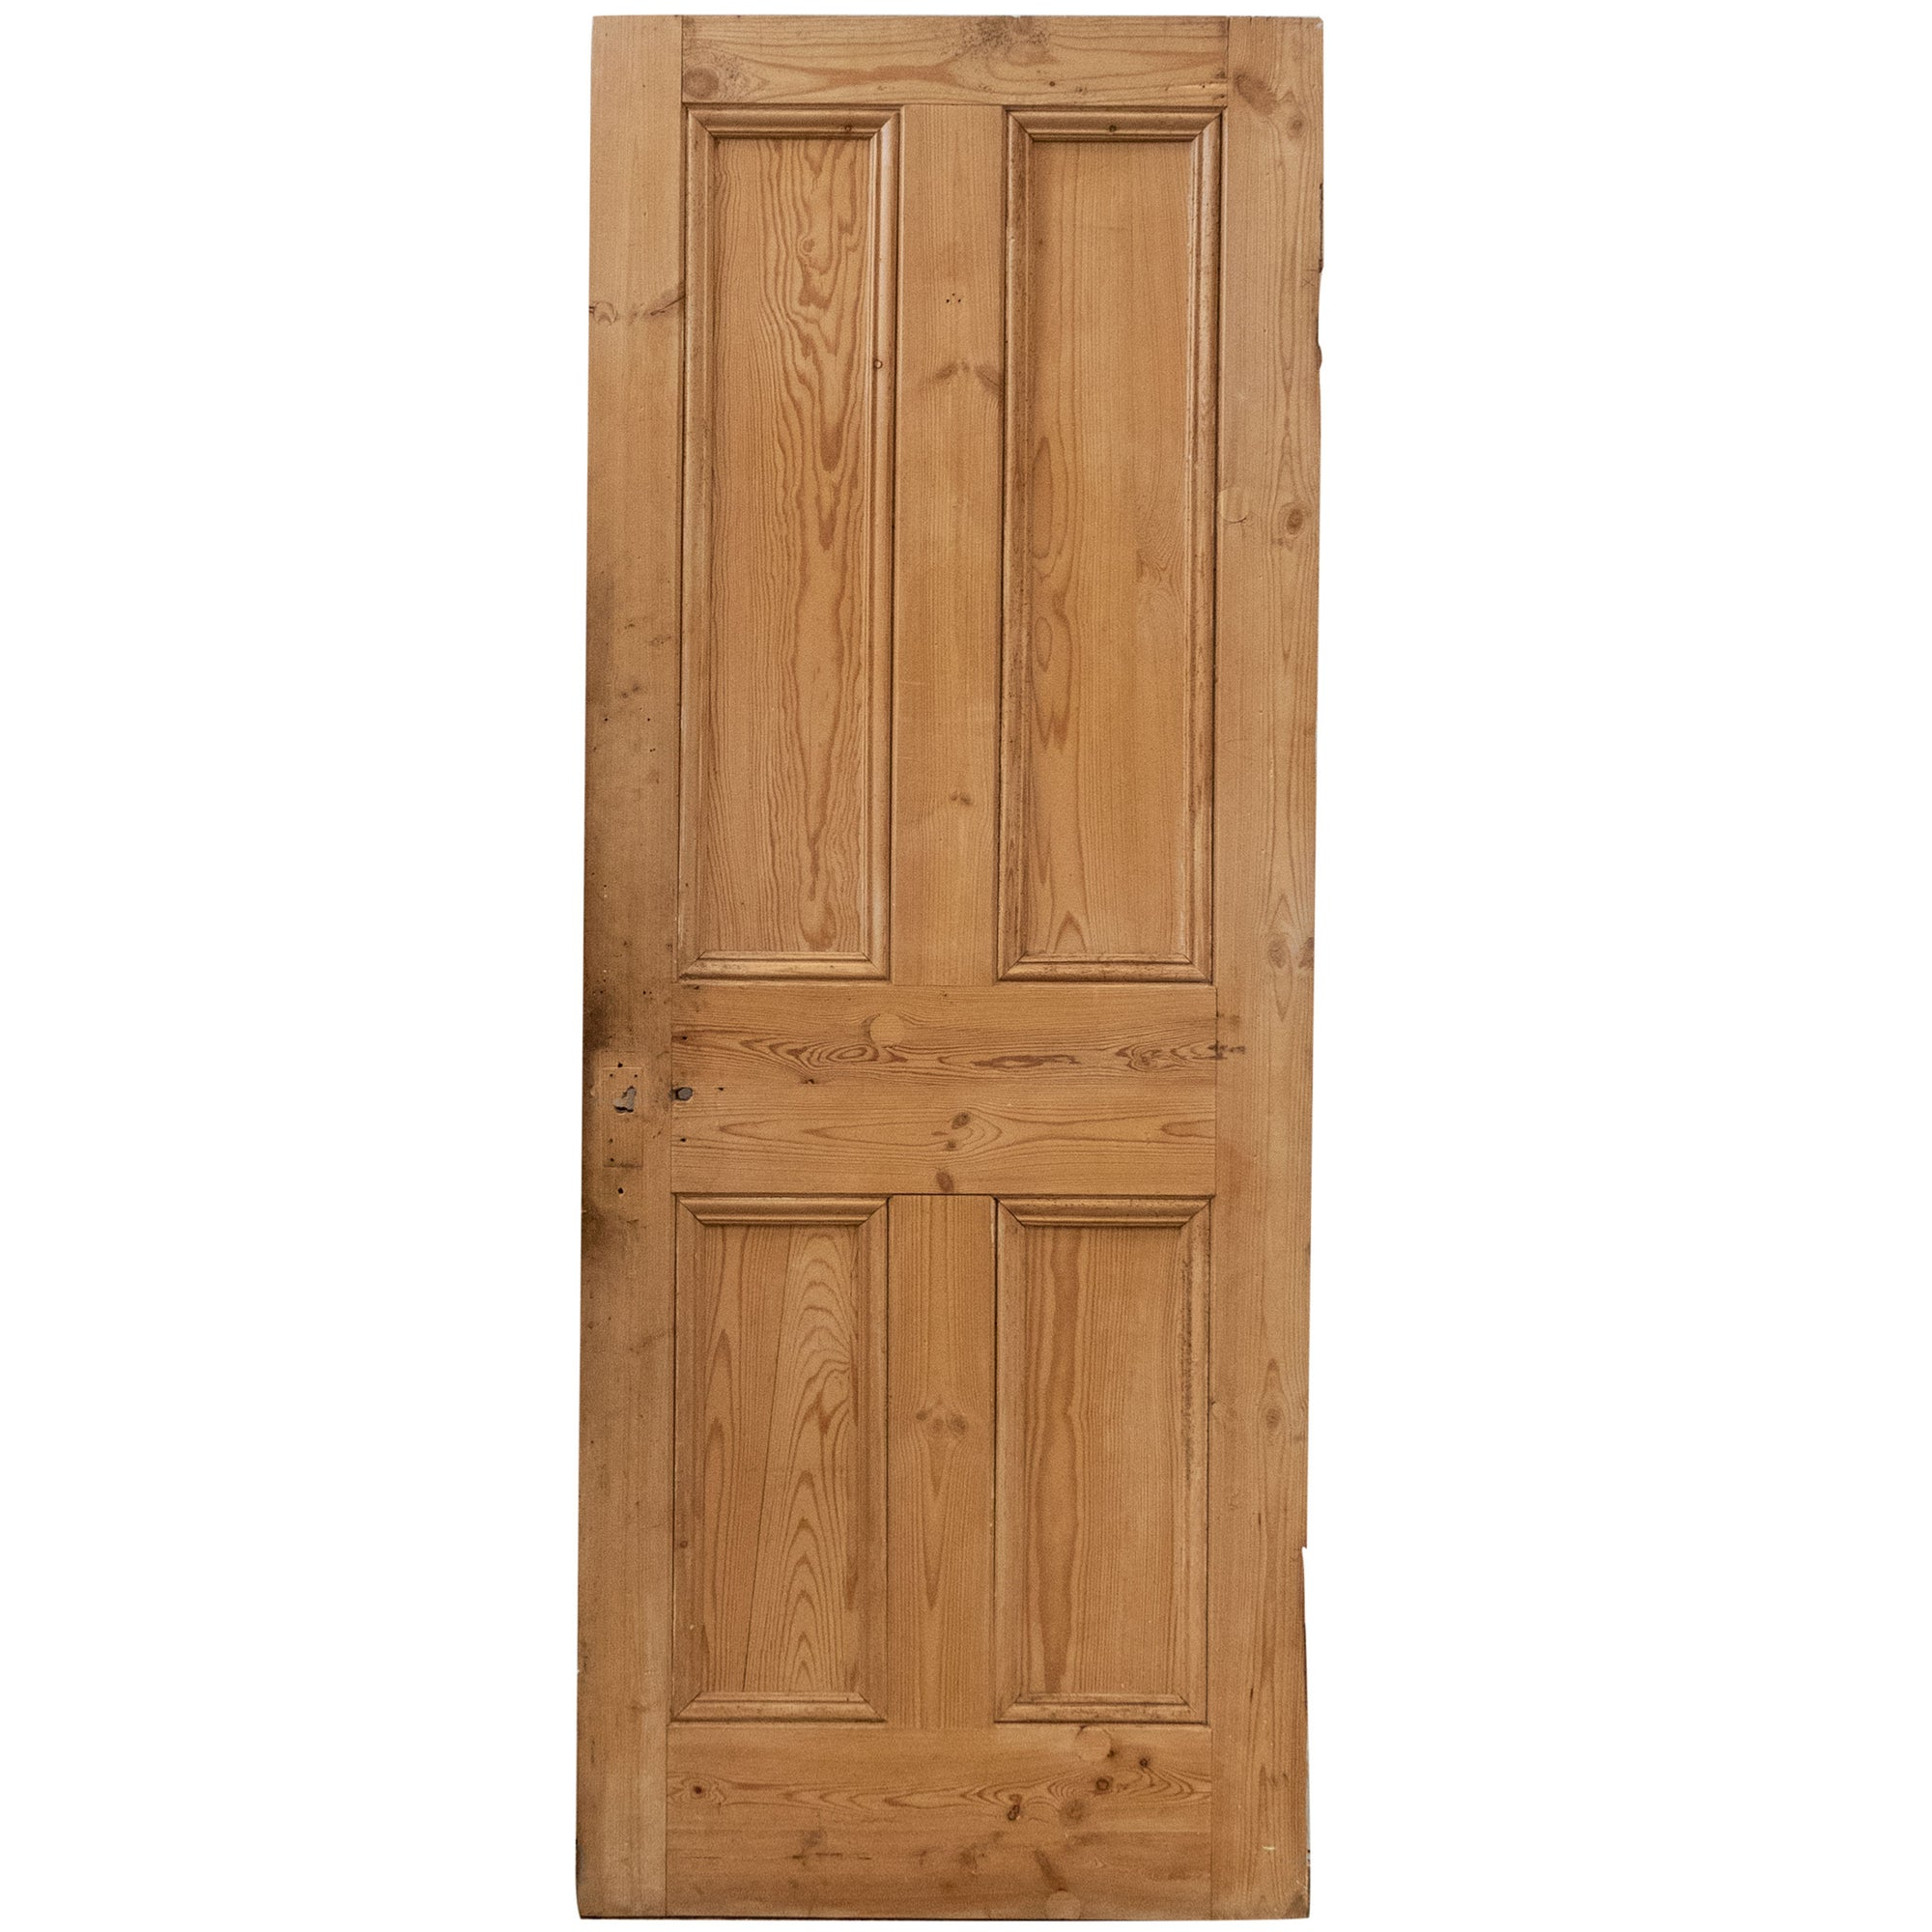 Victorian 4 Panel Door - 195cm x 75cm - architectural-forum